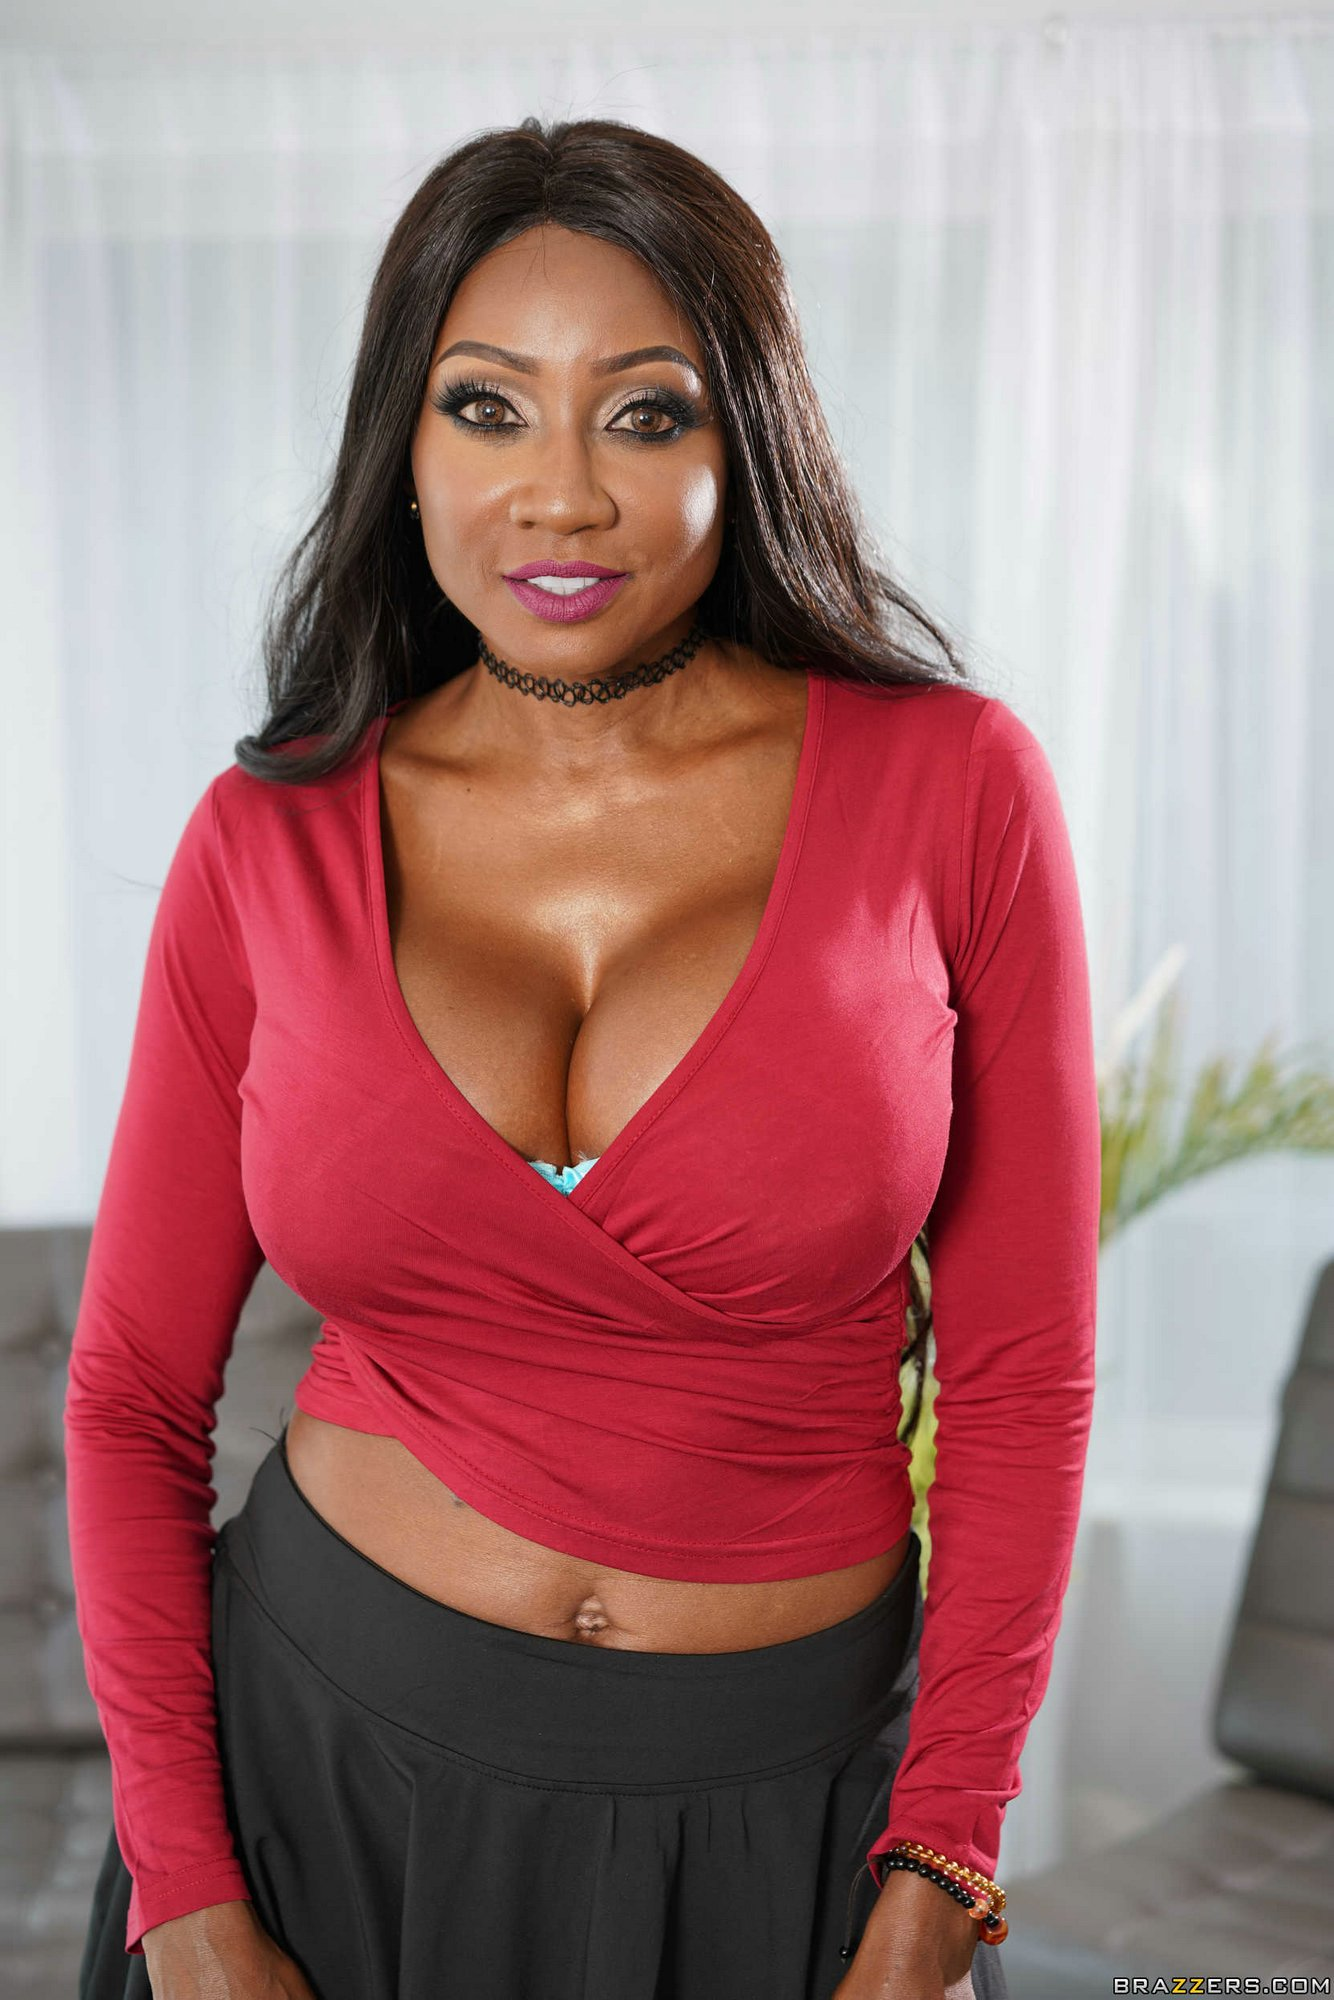 Diamond princess actress age porn - Diamond jackson loves showing her tight  body pornstar jpg 1334x2000